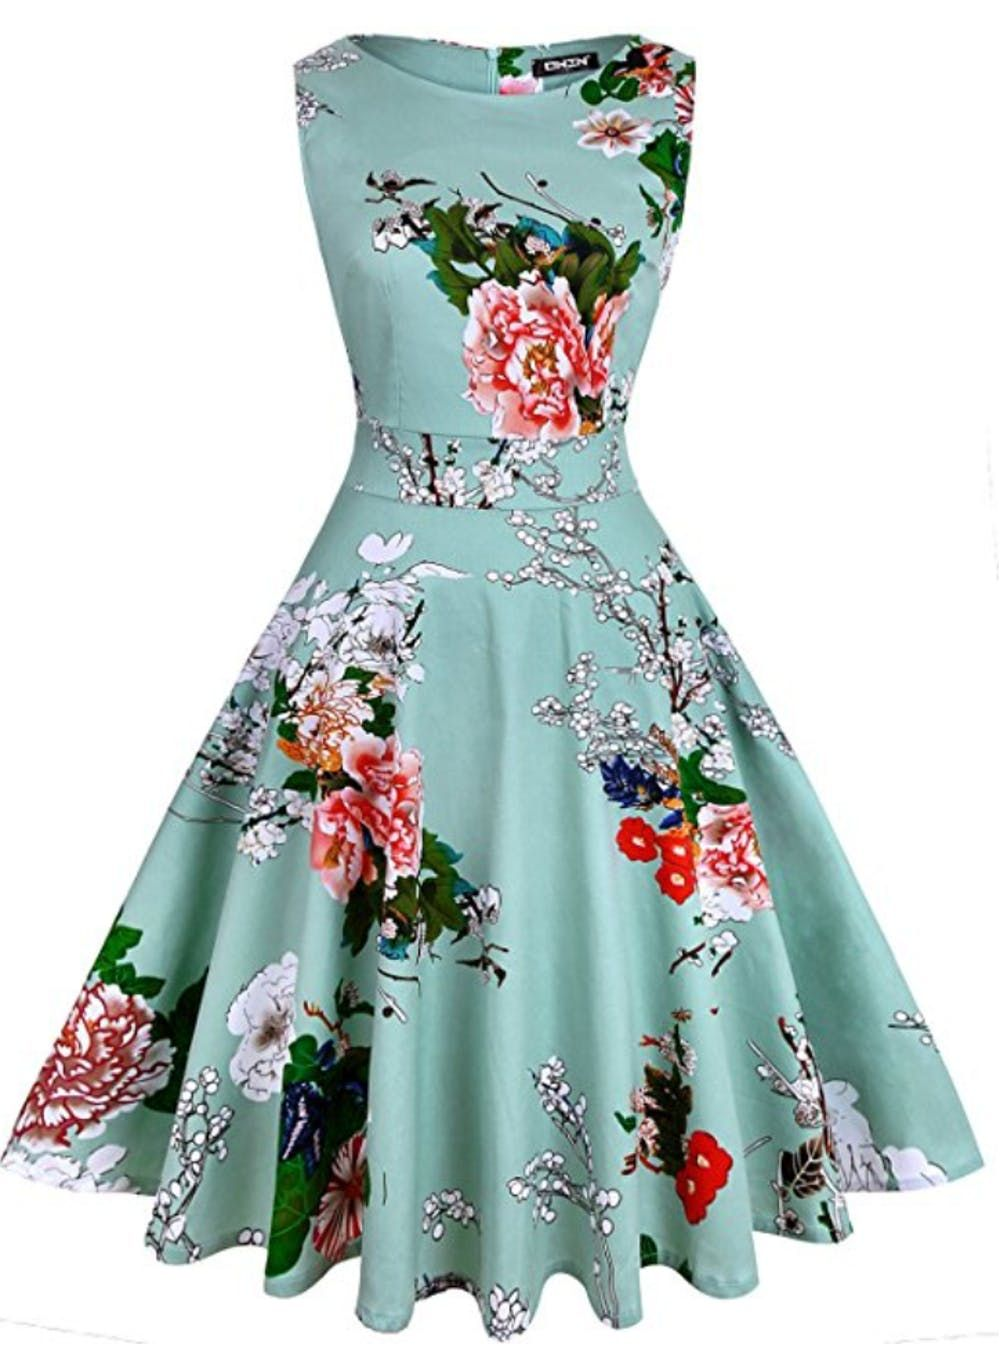 12 Affordable Spring Wedding Guest Dresses You Can Score On Amazon Brit Co Cocktail Dress Party Floral Cocktail Dress Floral Homecoming Dresses [ 1348 x 1000 Pixel ]